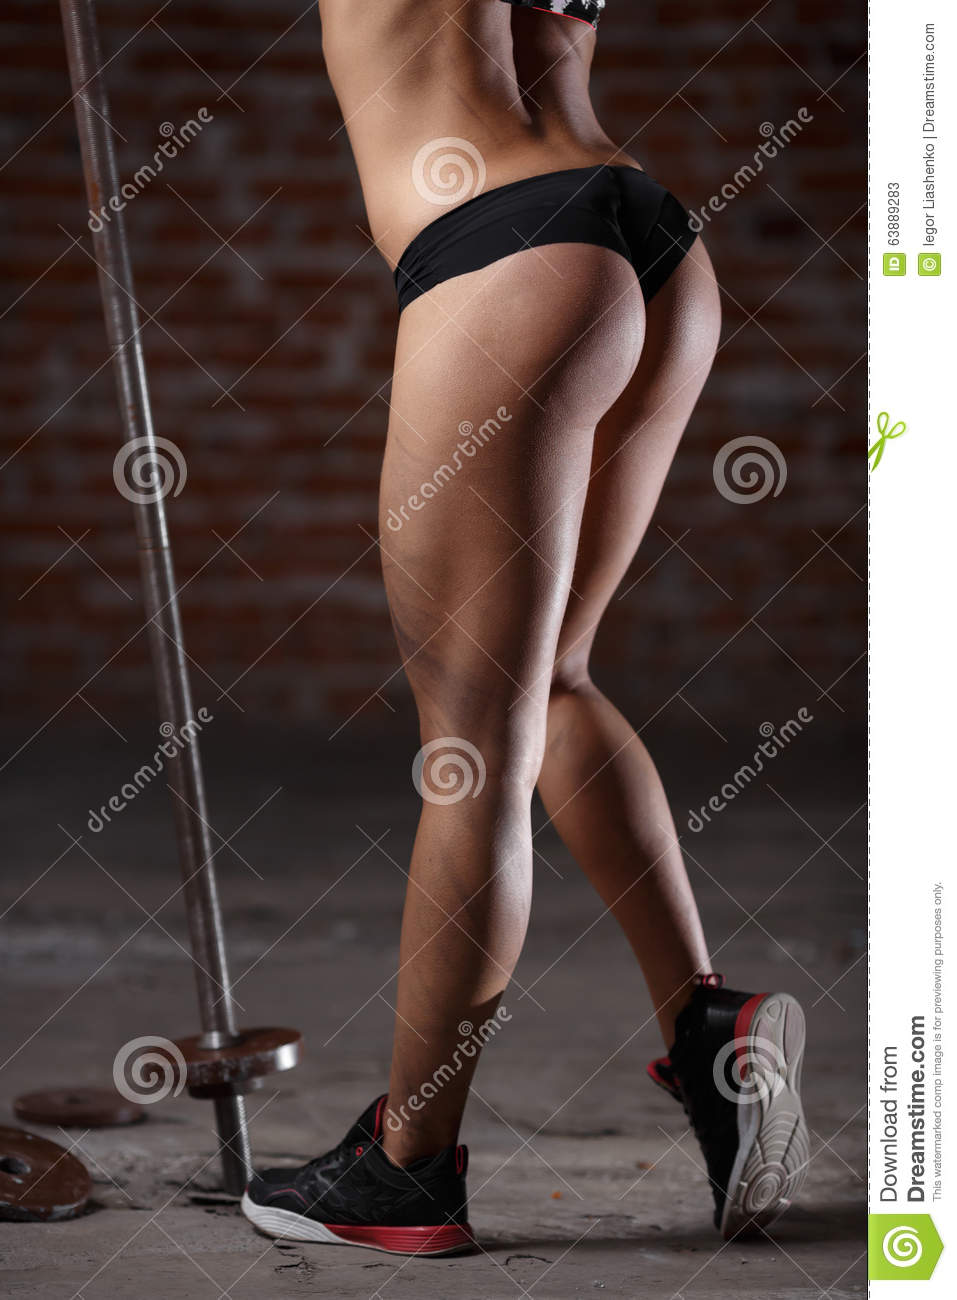 beautiful athletic buttocks close-up stock image - image of isolated